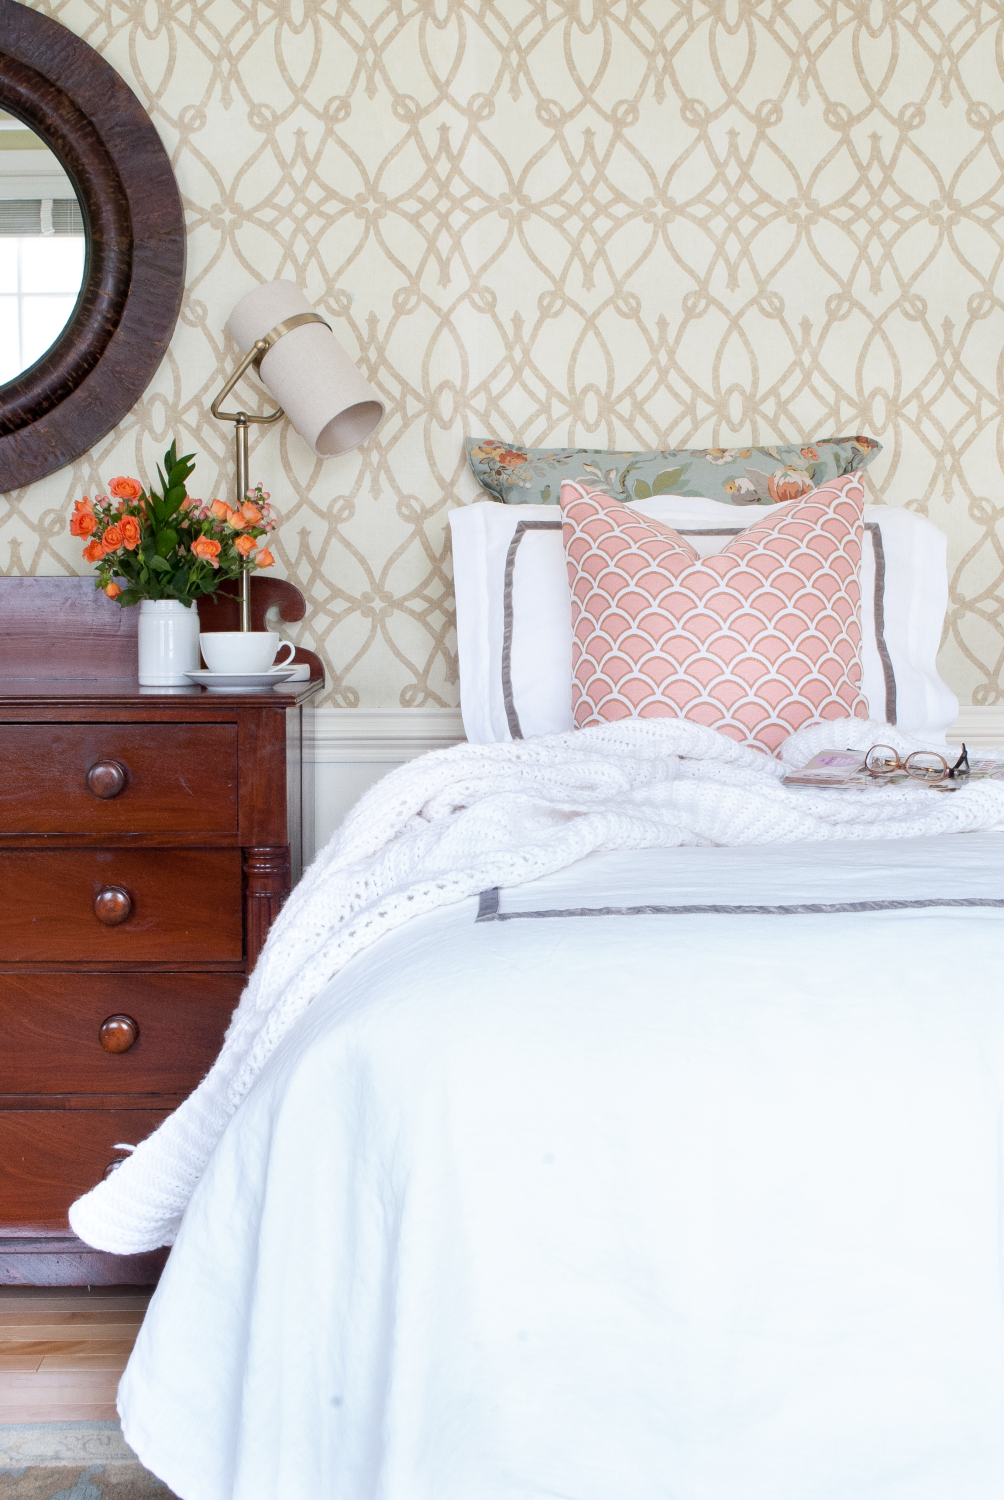 quality twin bedding-5